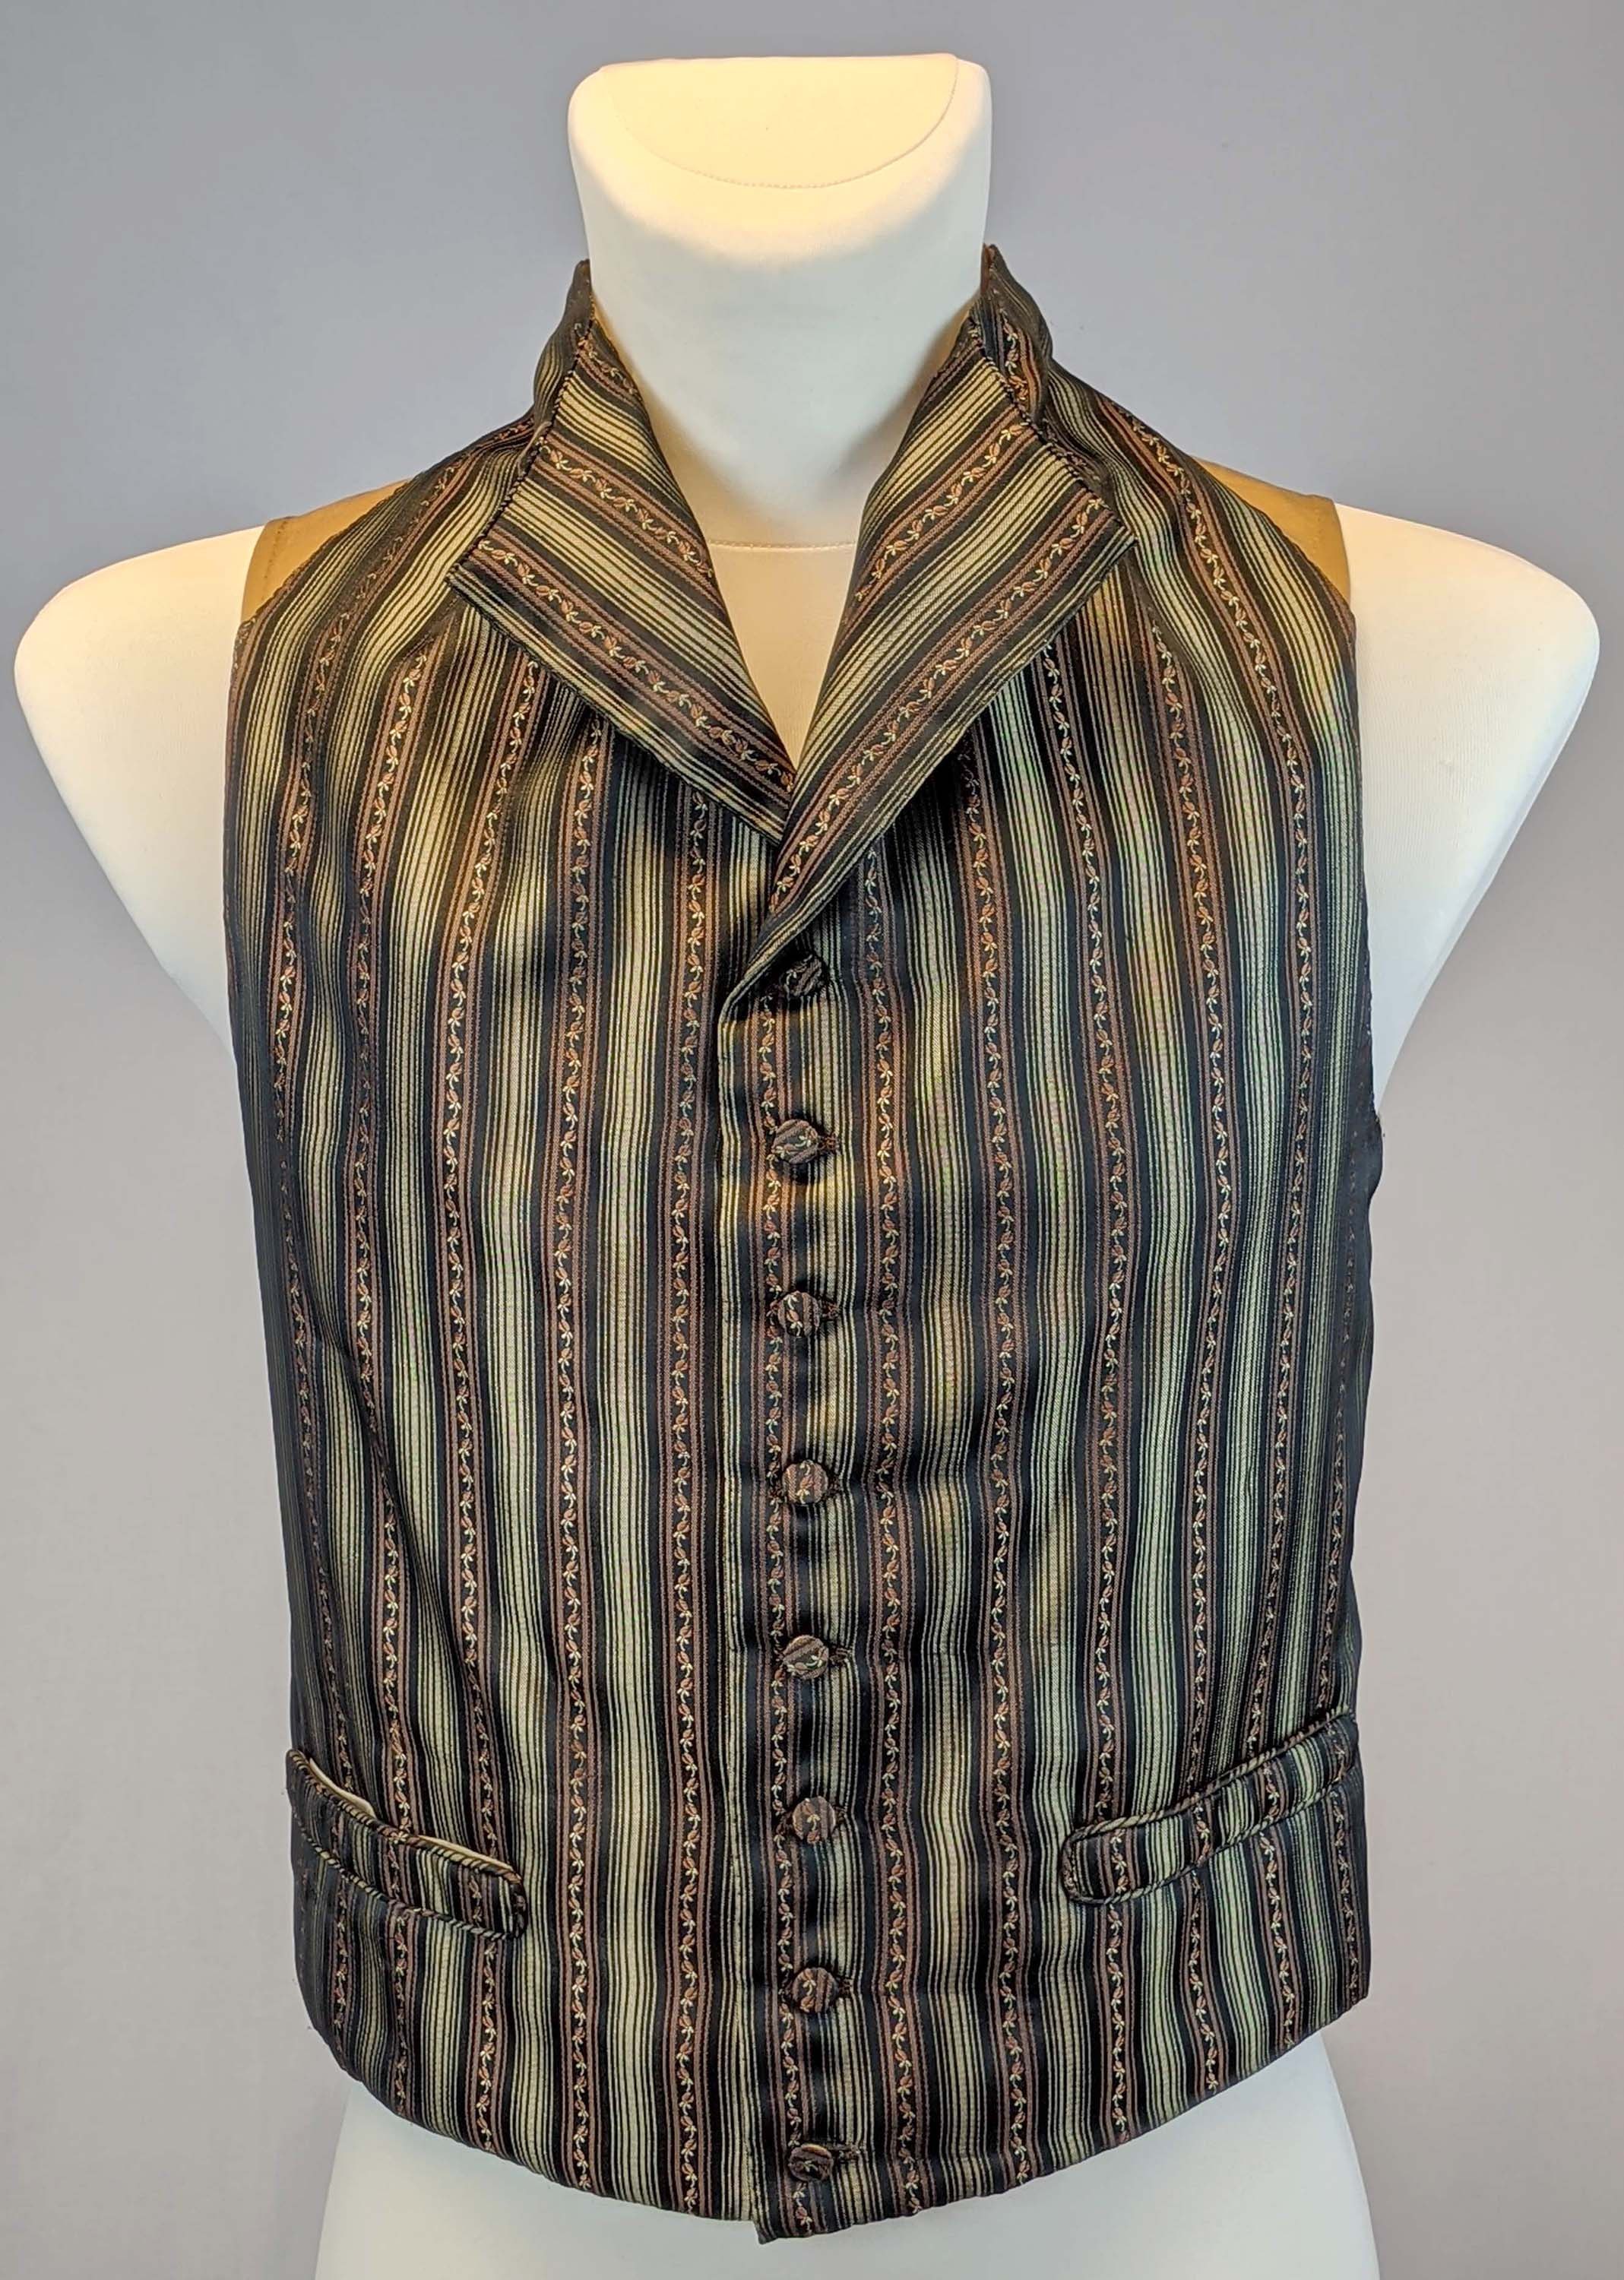 Georgian Mens Waistcoat, late 18th century Sewing Pattern #0819 Size US 34-56 (EU 44-66) PDF Download